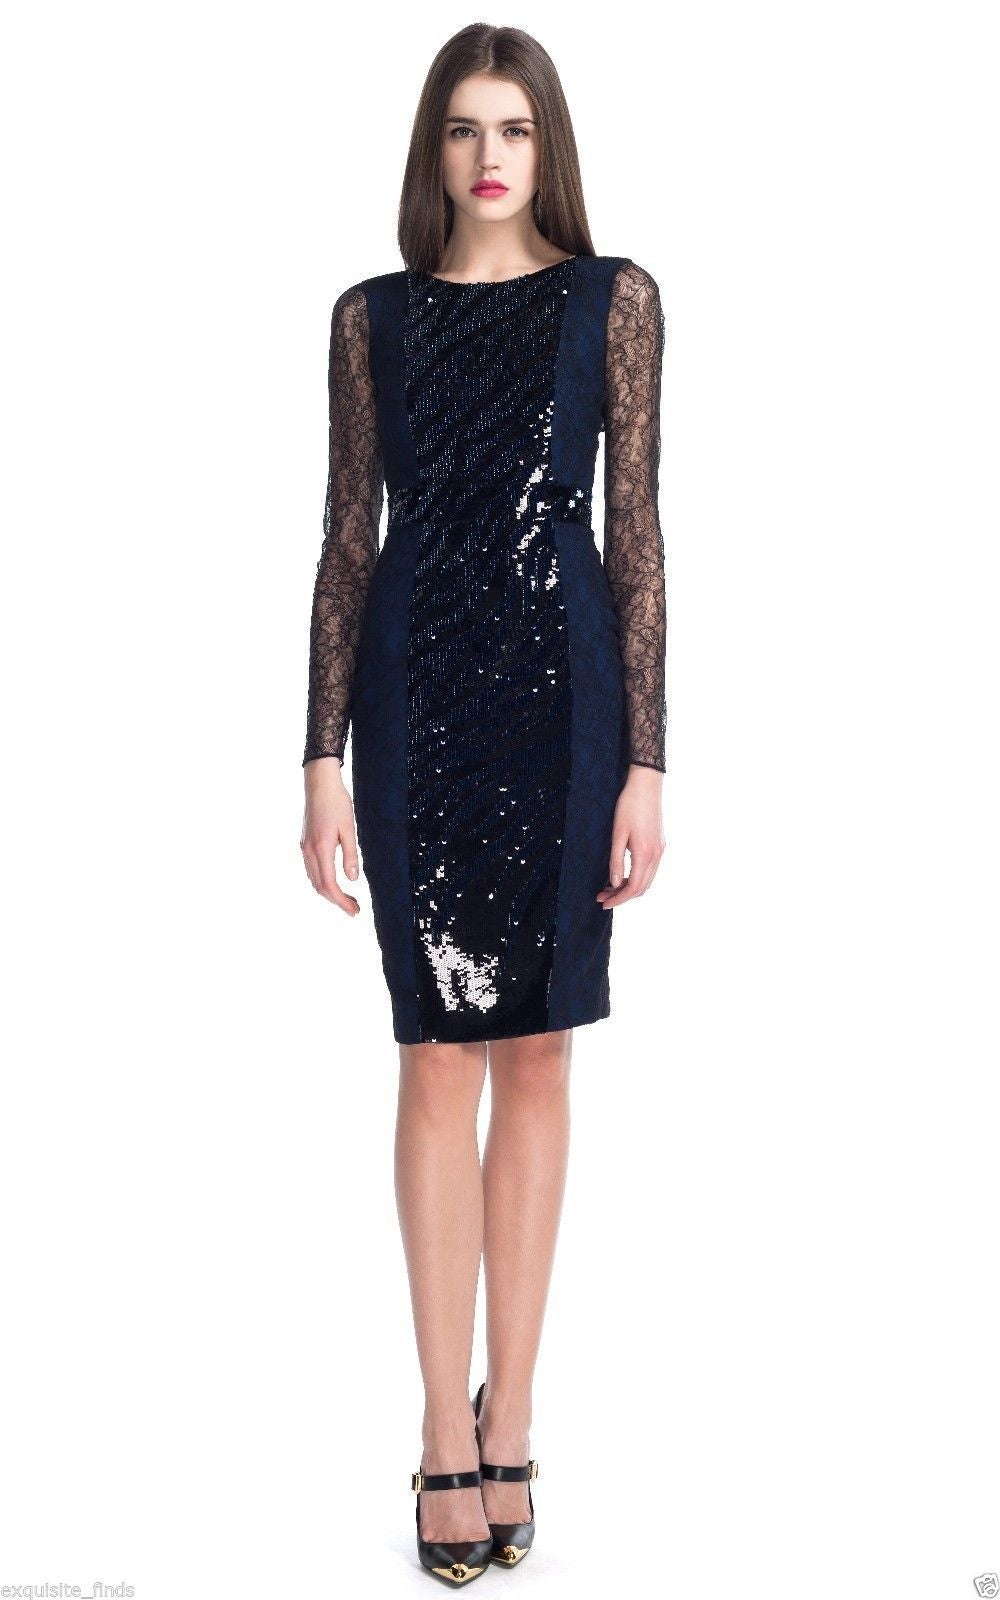 New VERSACE Sequin Embroidered Lace Cocktail Dress In New never worn Condition For Sale In Montgomery, TX